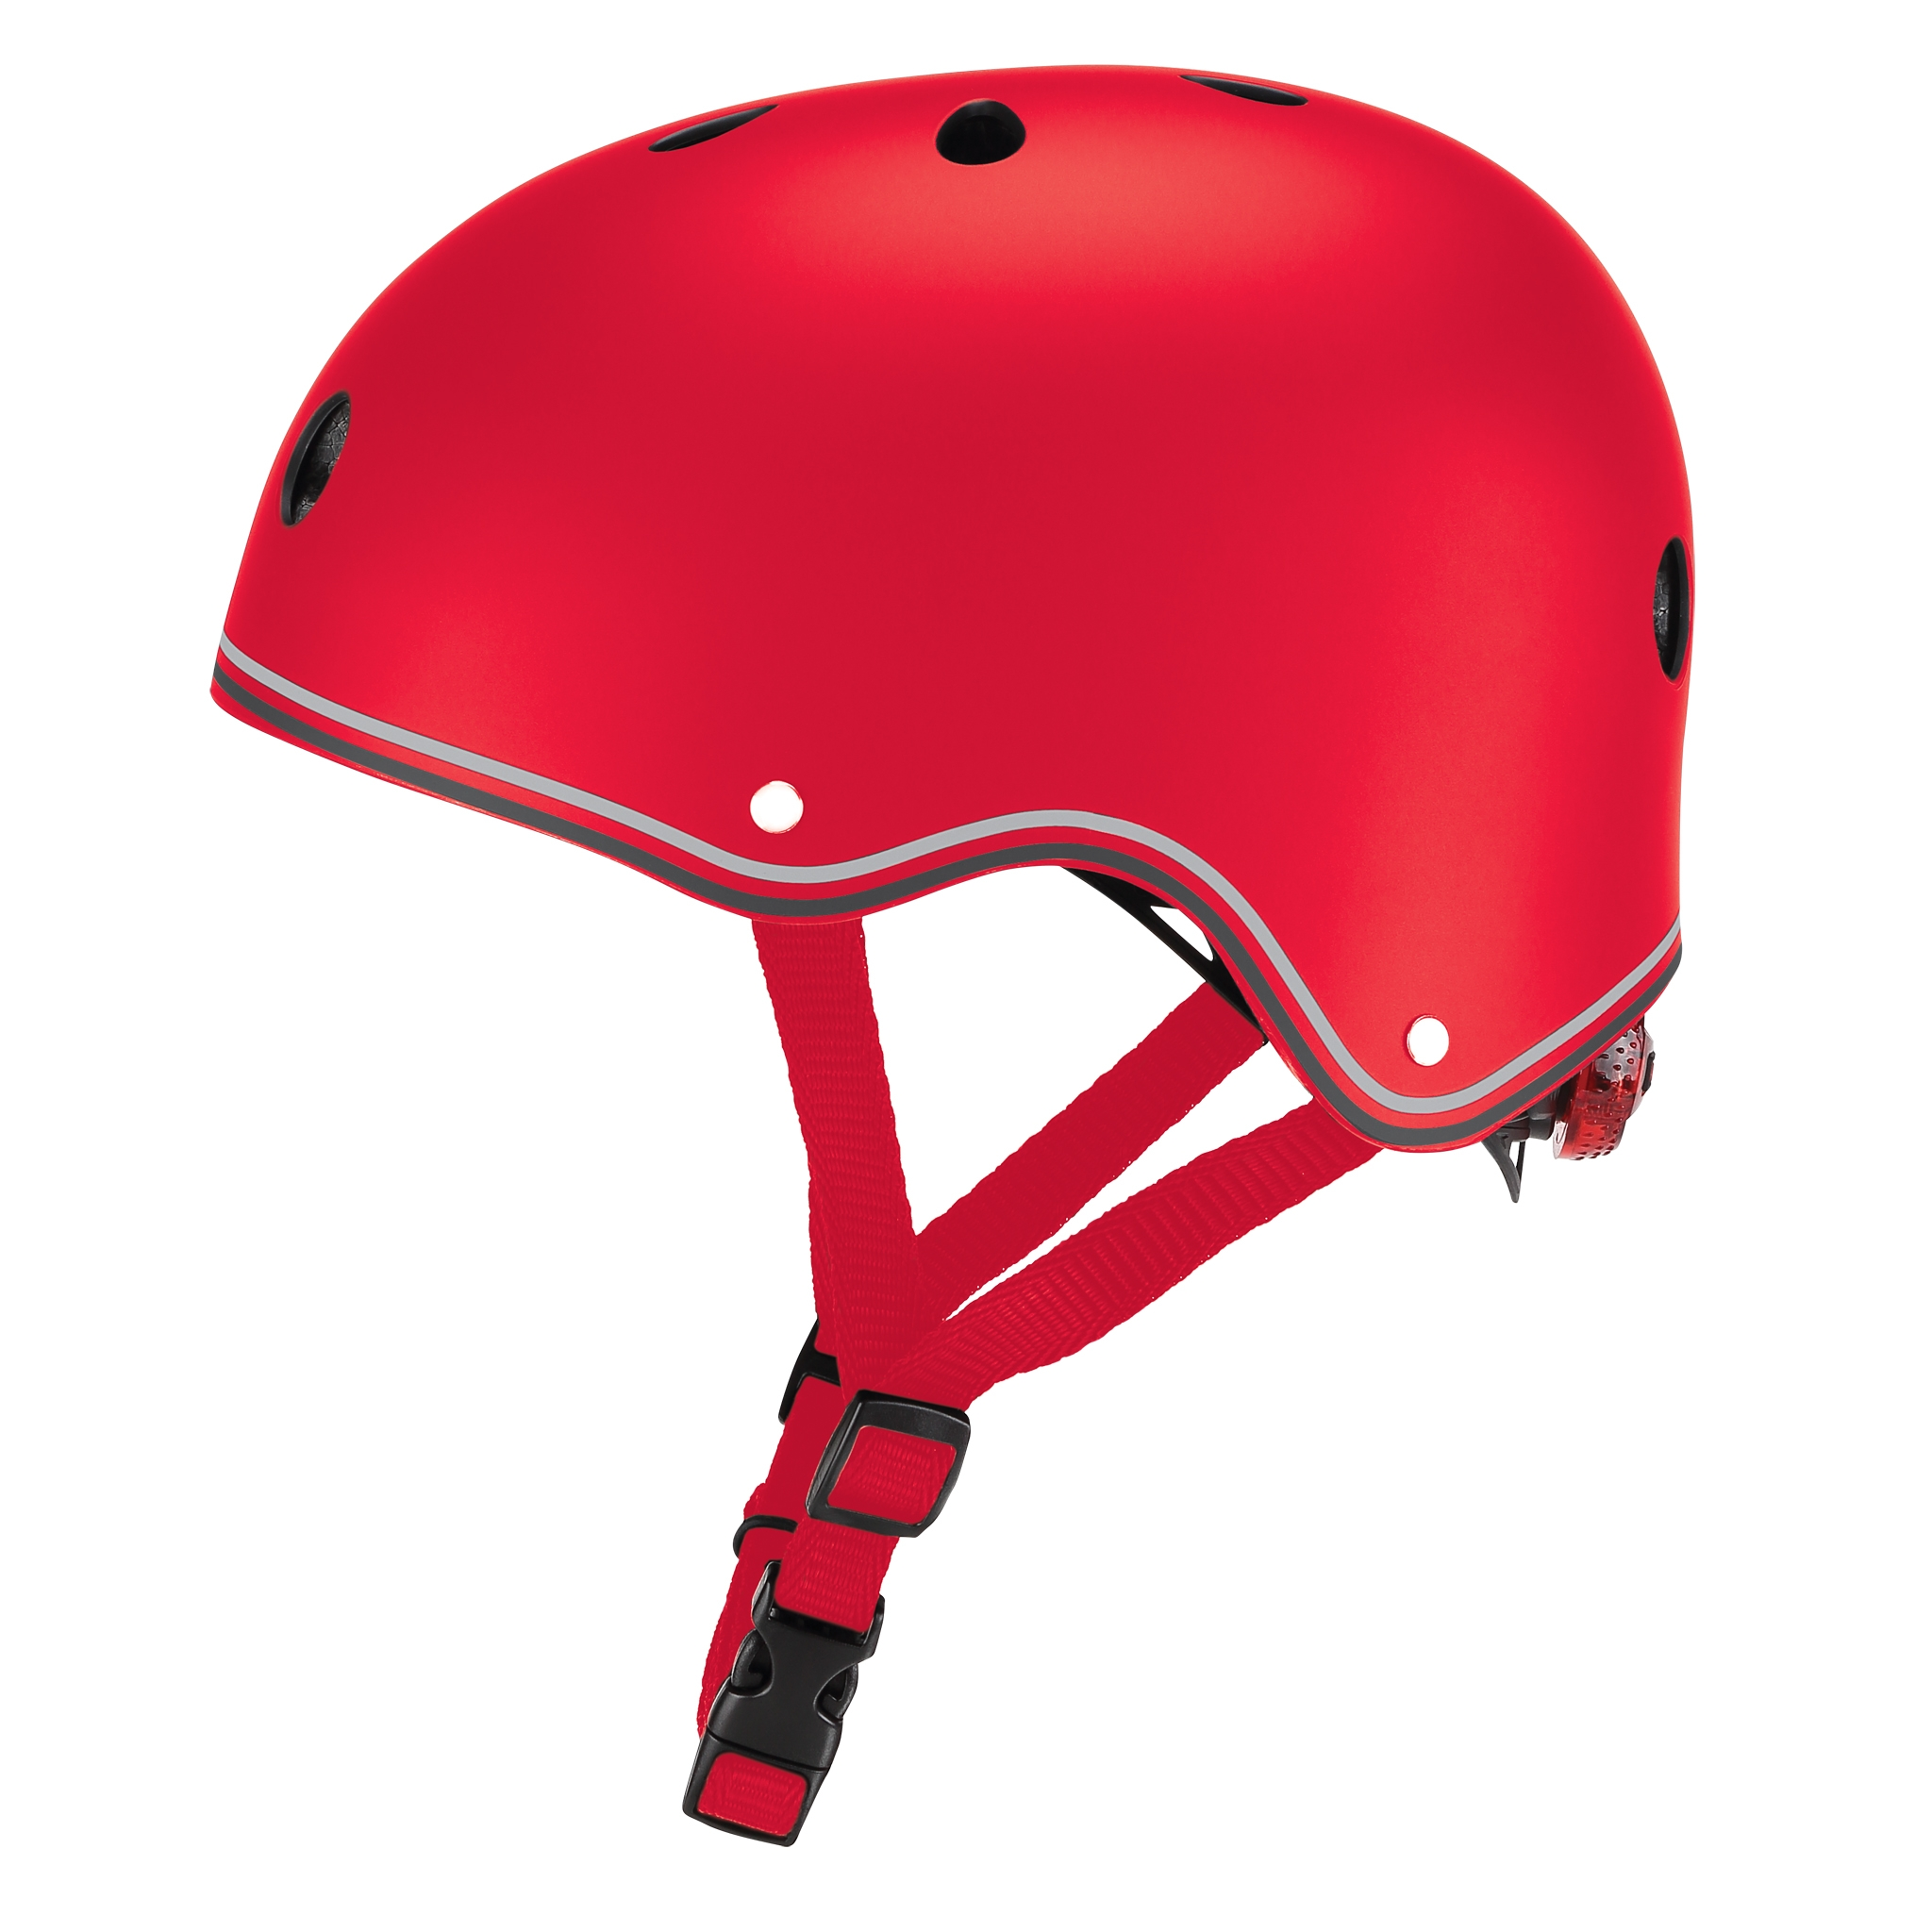 PRIMO-helmets-scooter-helmets-for-kids-with-adjustable-helmet-knob-new-red